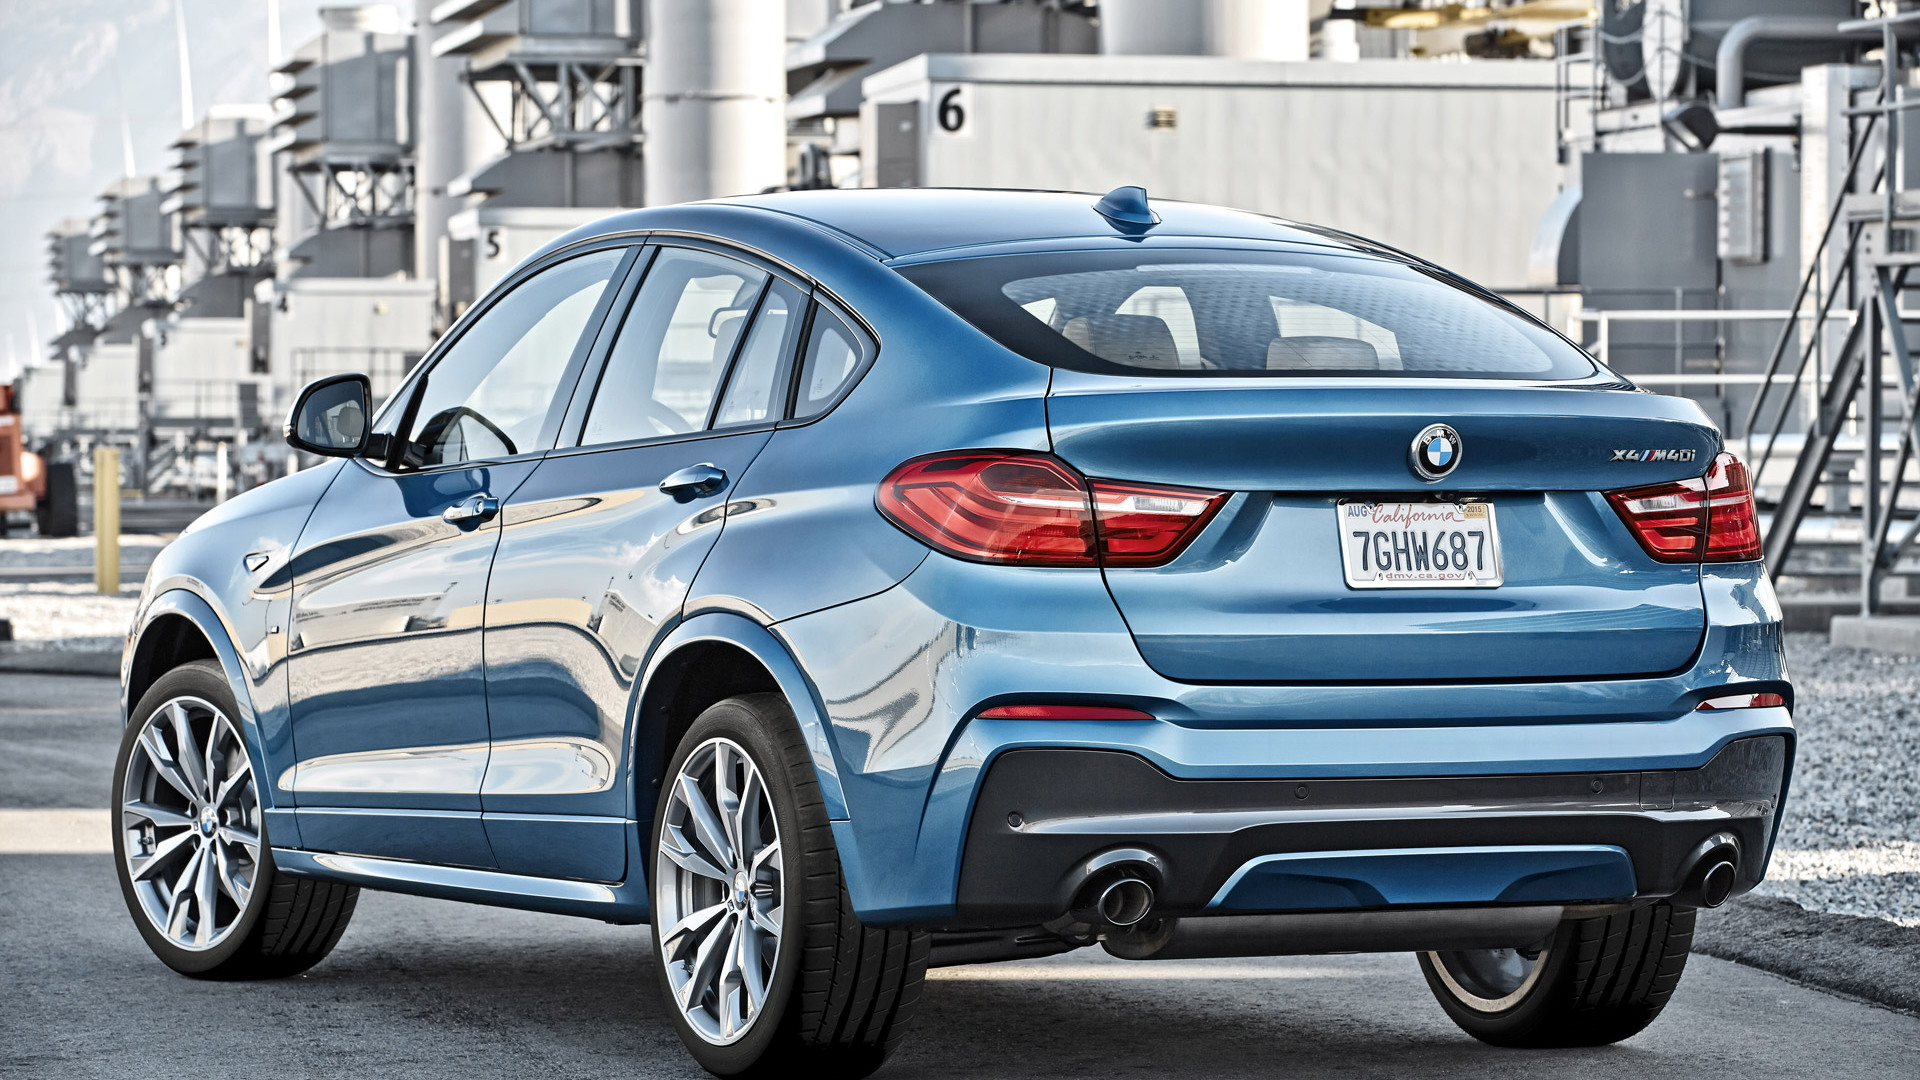 2016 BMW X4 M40i M Performance Model Makes Debut